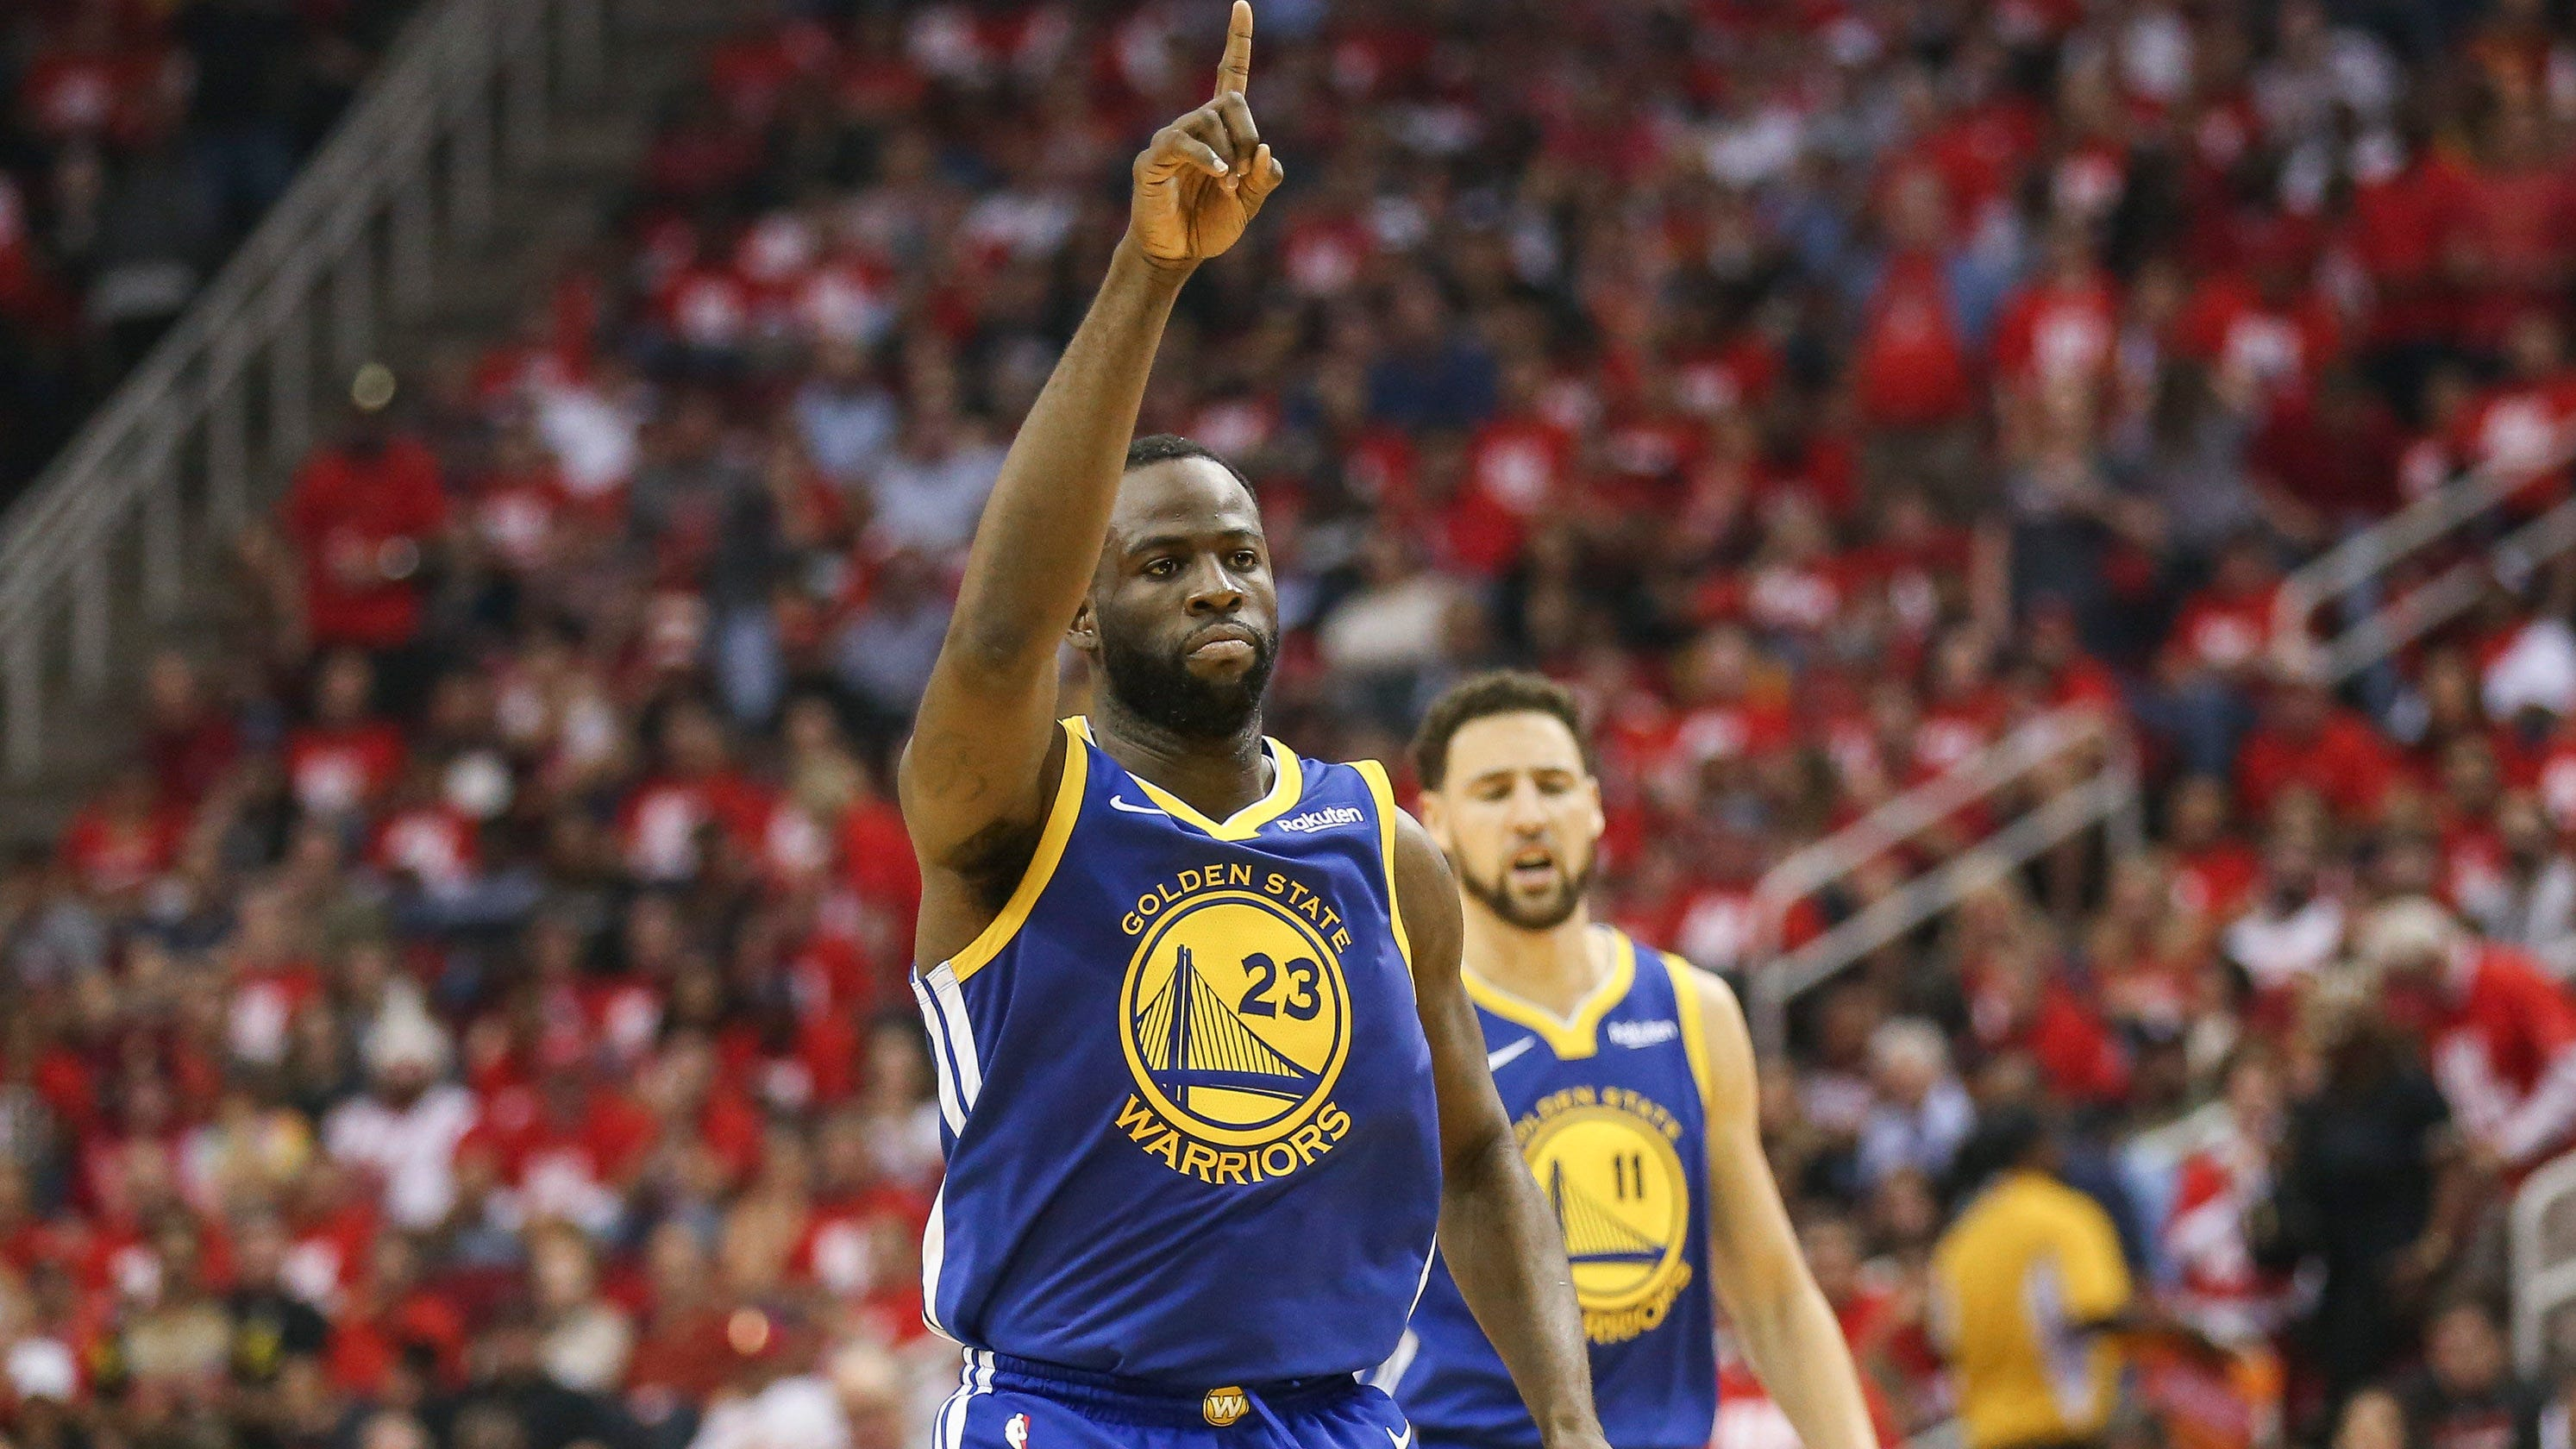 Draymond Green predicts easy fix and turnaround for Warriors against Rockets